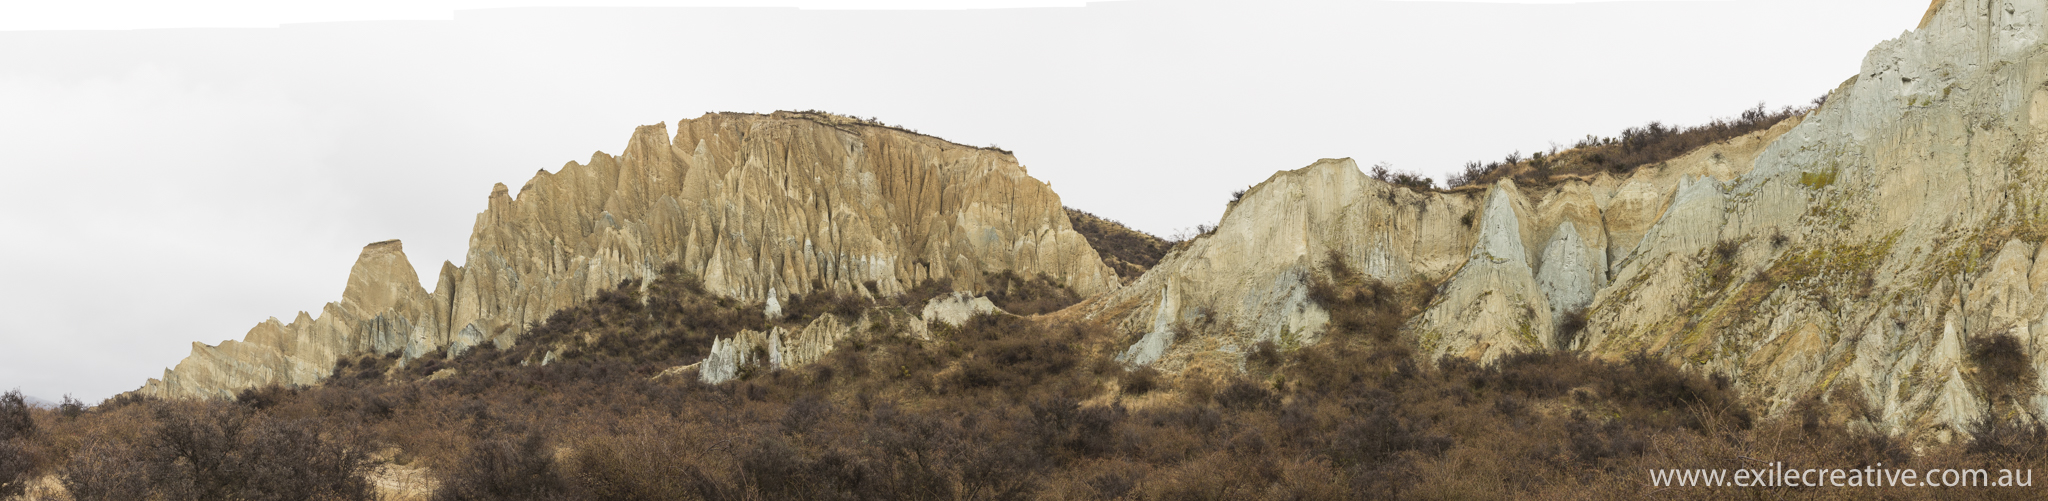 The Clay Cliffs  Canon 5Dmiii, 24-105L IS @ 100mm, ISO400, f/8, 1/320s  Stitched Pano